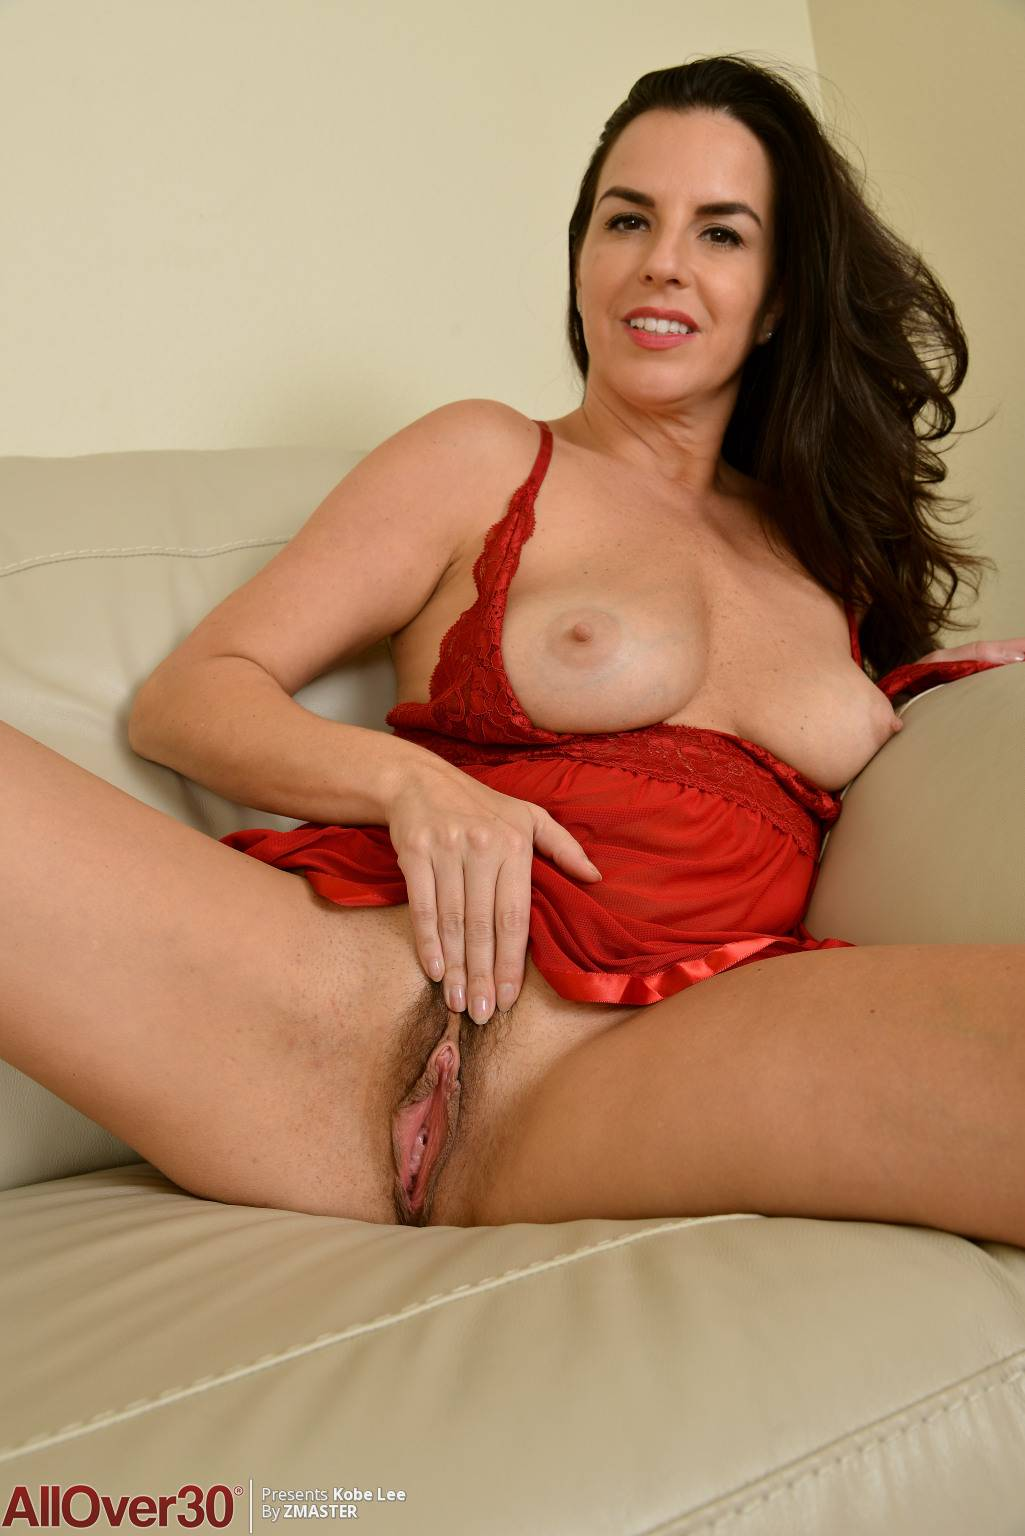 Brunette mature Kobe Lee in red lingerie at AllOver30